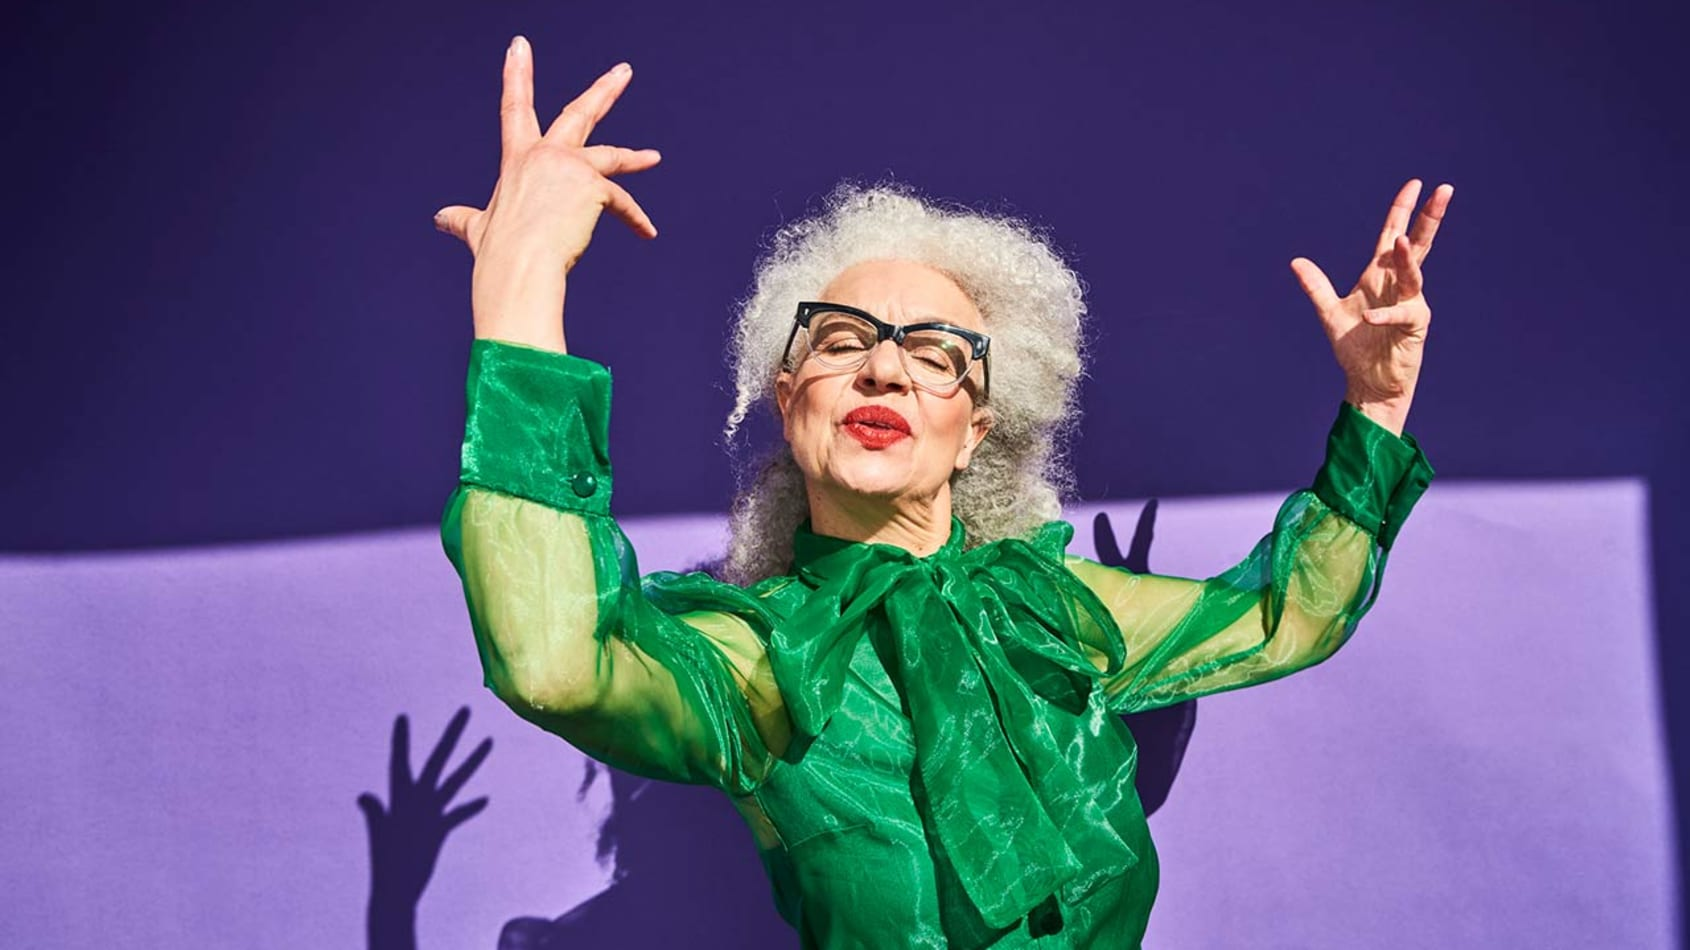 A senior woman in a bright green blouse with her hands in the air.